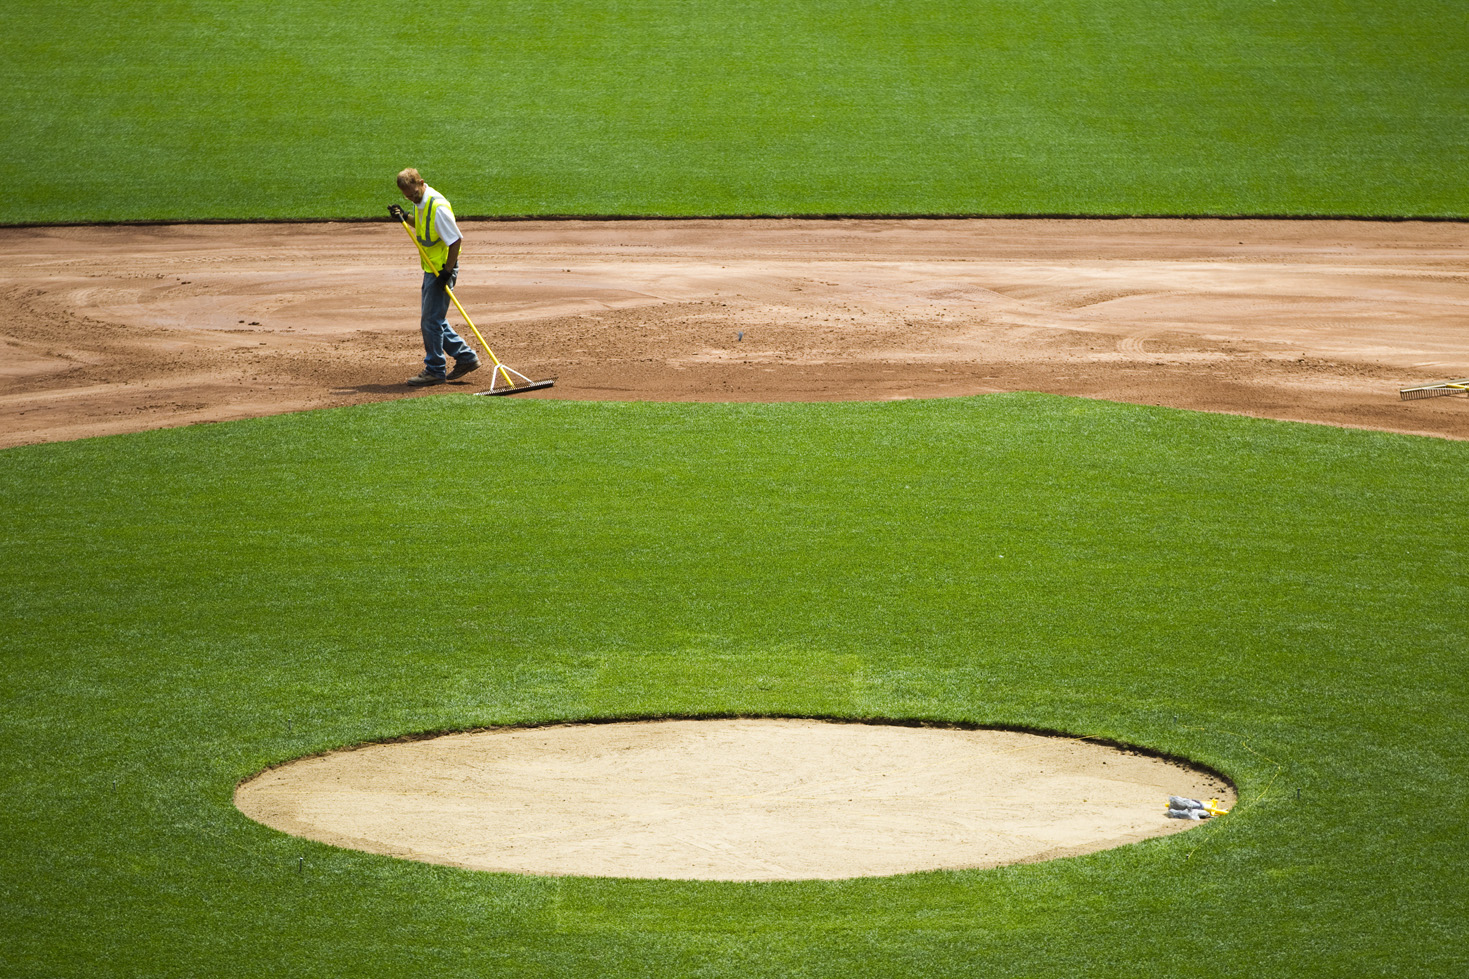 The crew from Bush Turf, a subcontractor hired by Miller Park, begins to transform the baseball diamond into a soccer field on Friday, July 10, 2015.  The first step was to remove the clay surfaces and prepping the ground for the grass.